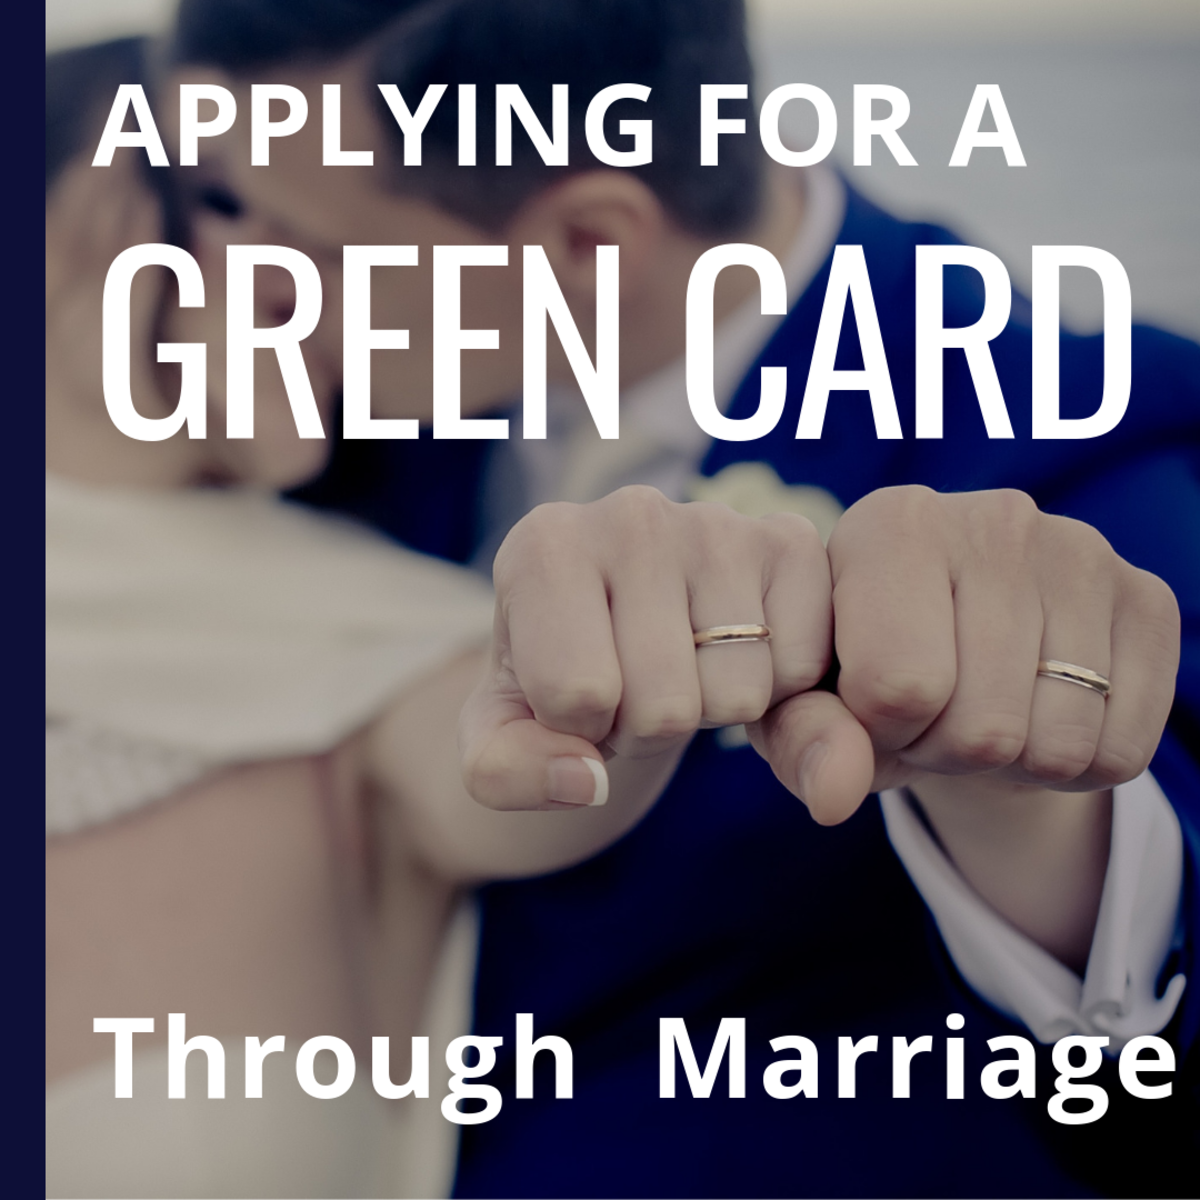 How to Get a Green Card in the U.S. Through Marriage